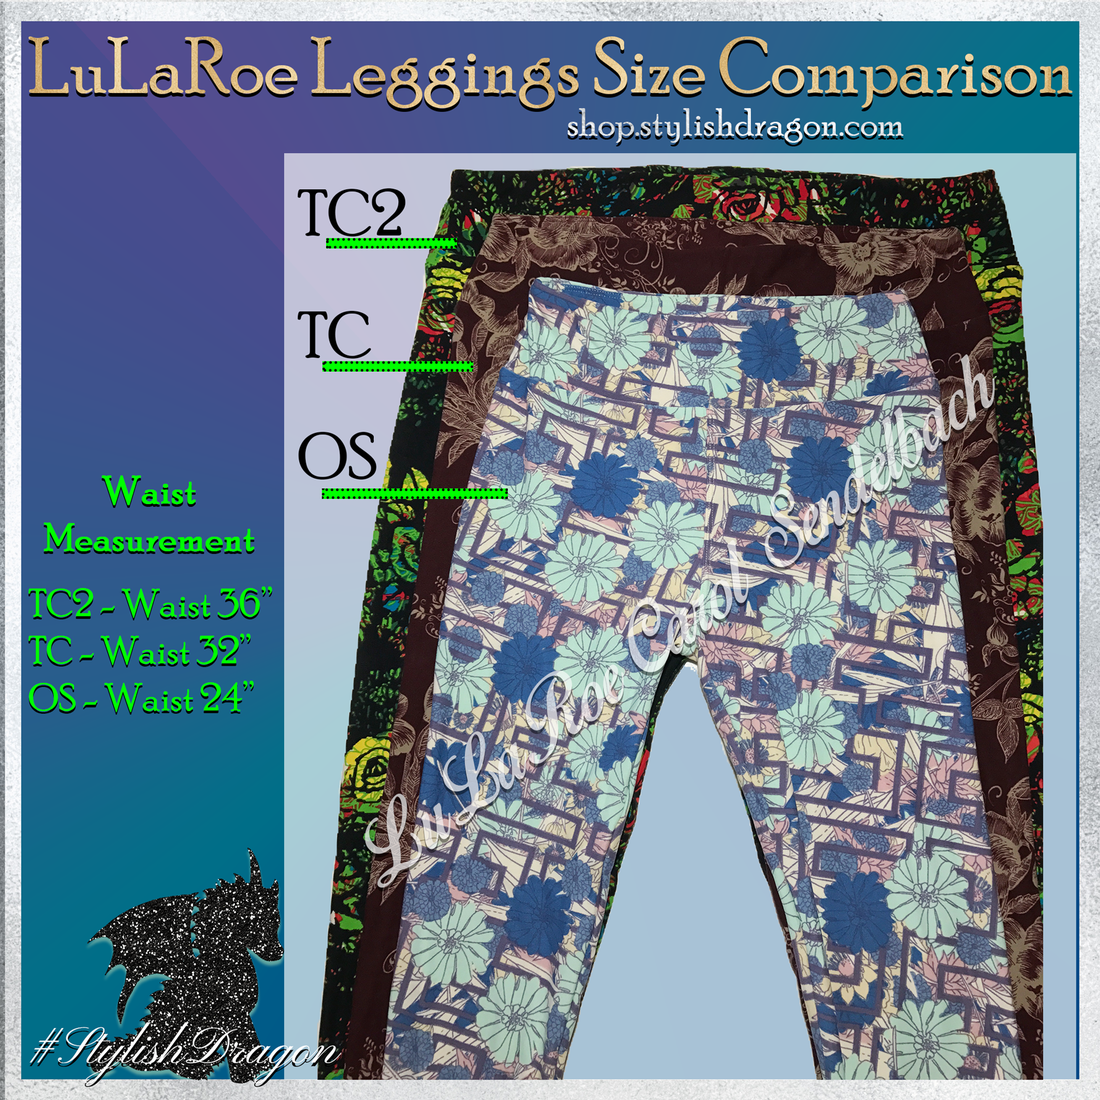 d0a51275eeb30d Waist - Measured the waistband from seam to seam, multiplied by 2 to get the  total inches. Please note that LuLaRoe leggings stretch comfortably to fit  and ...